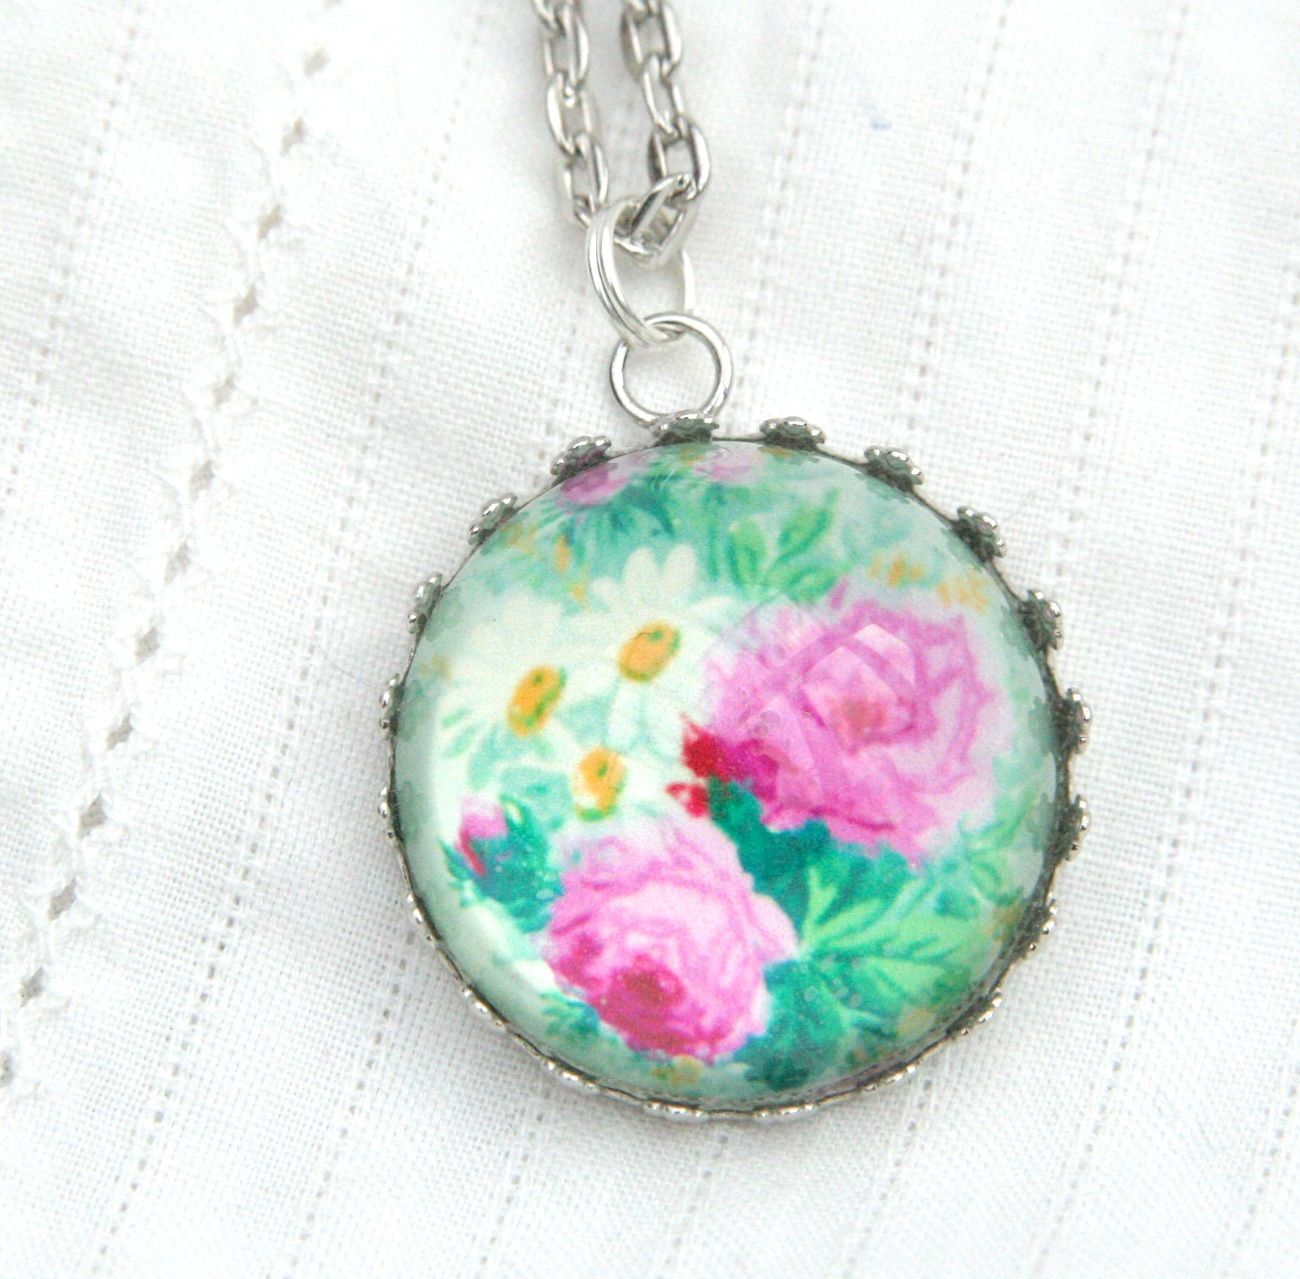 'Arsenical wallpaper' Victorian floral deep glass pendant